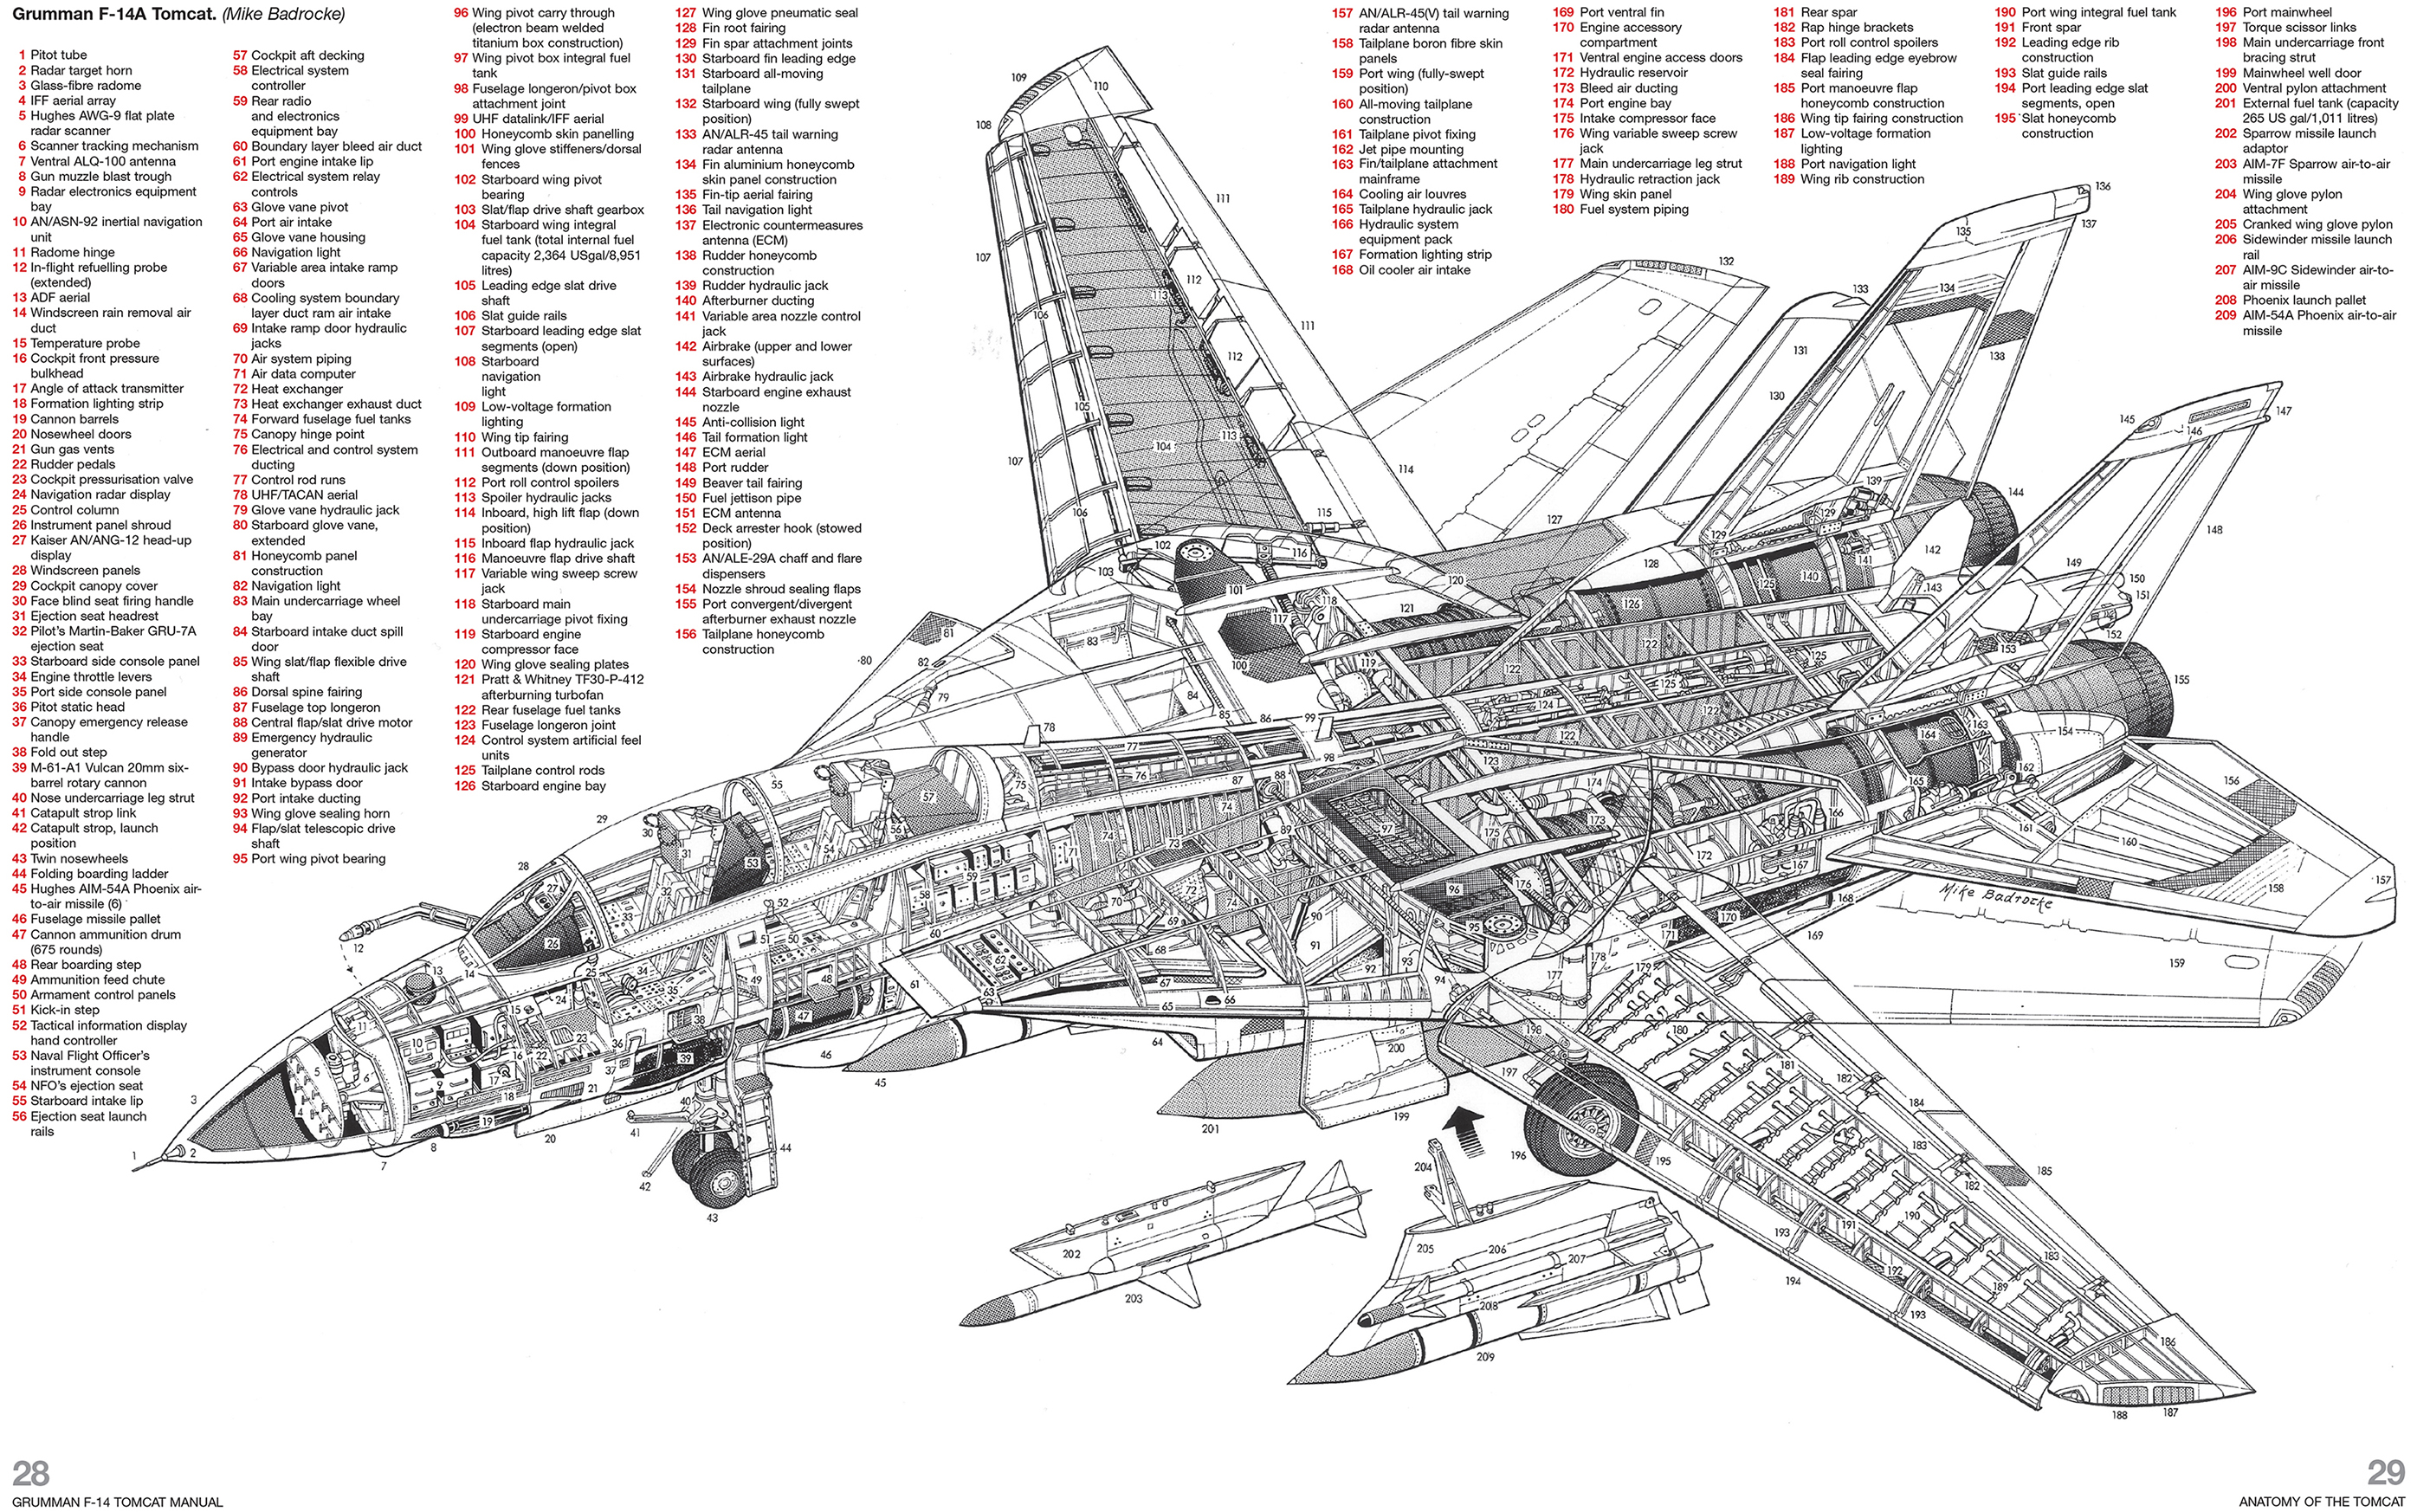 f 14 tomcat scematics pictures to pin on pinterest